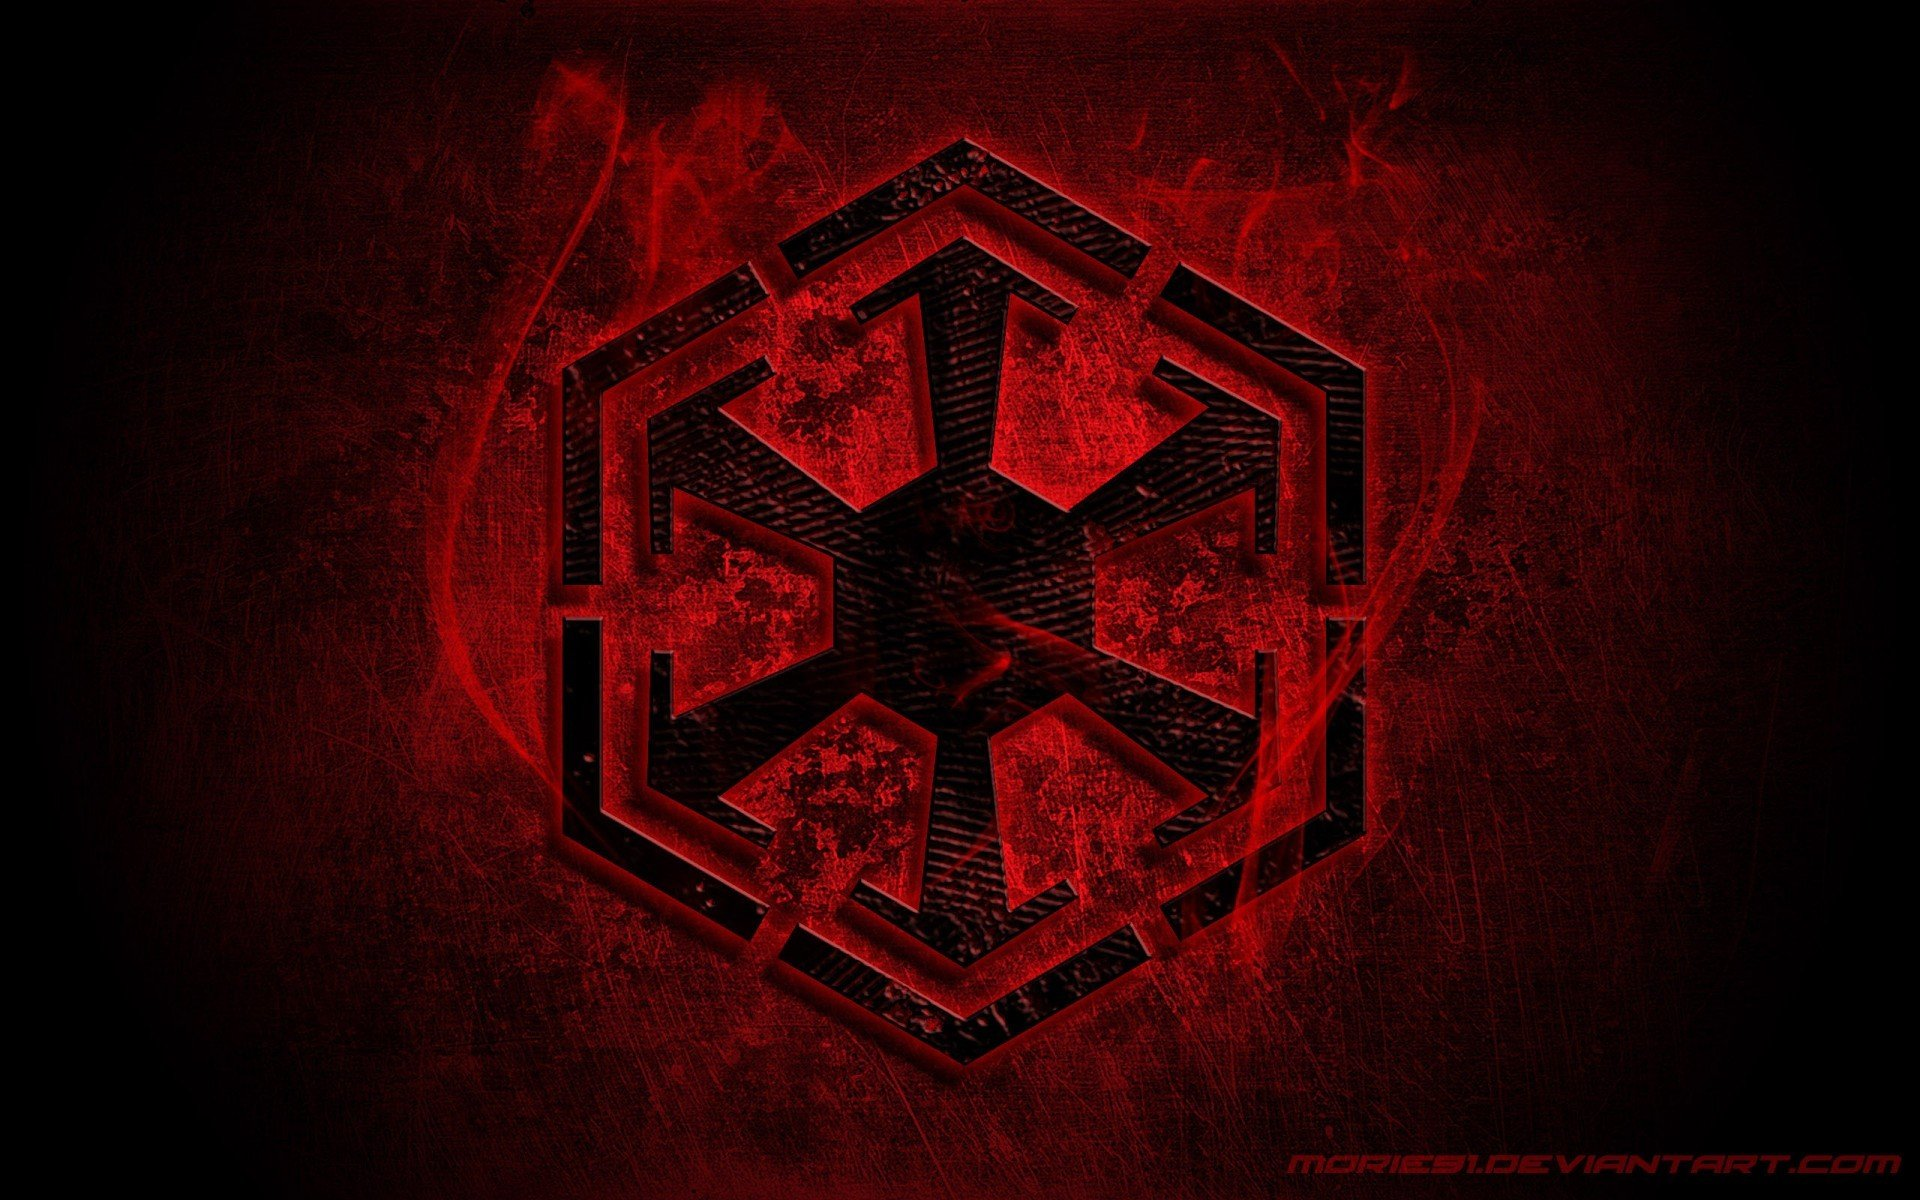 Star Wars The Old Republic Sith Logo Wallpaper 1920x1200 590331 Wallpaperup